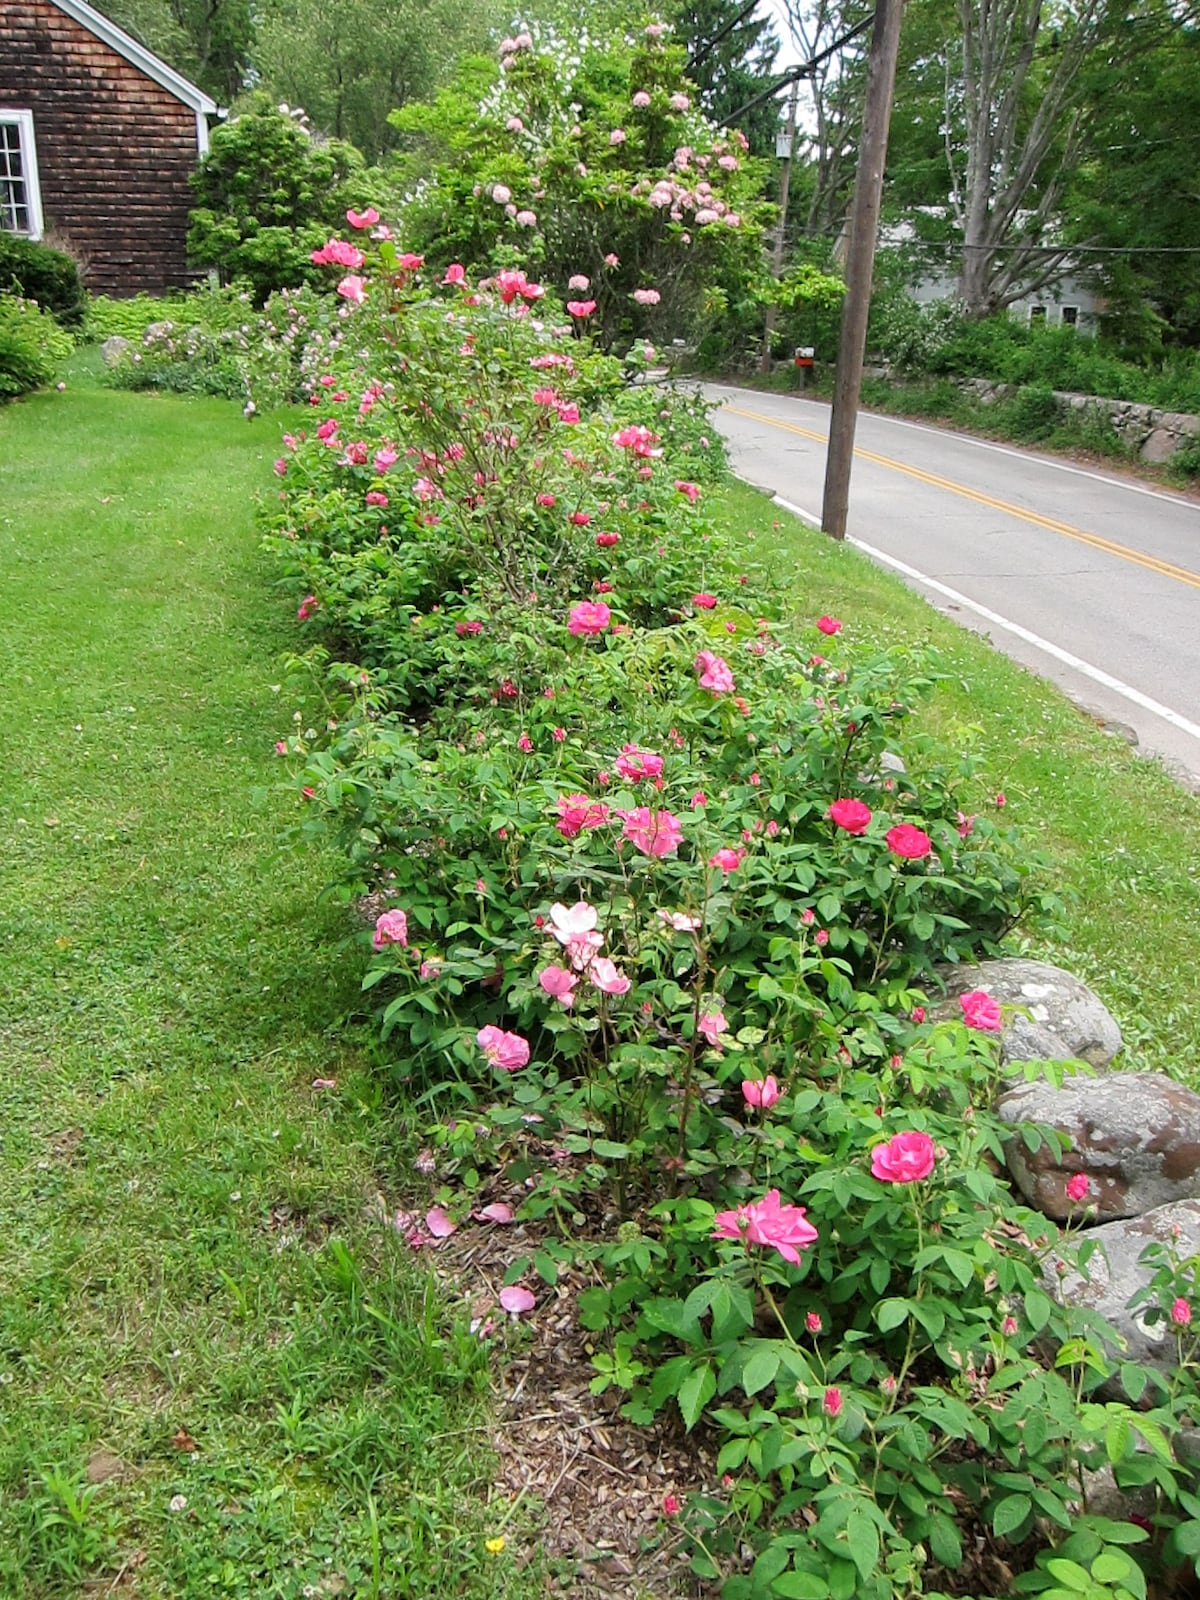 Antique rose bed along Post Road frontage